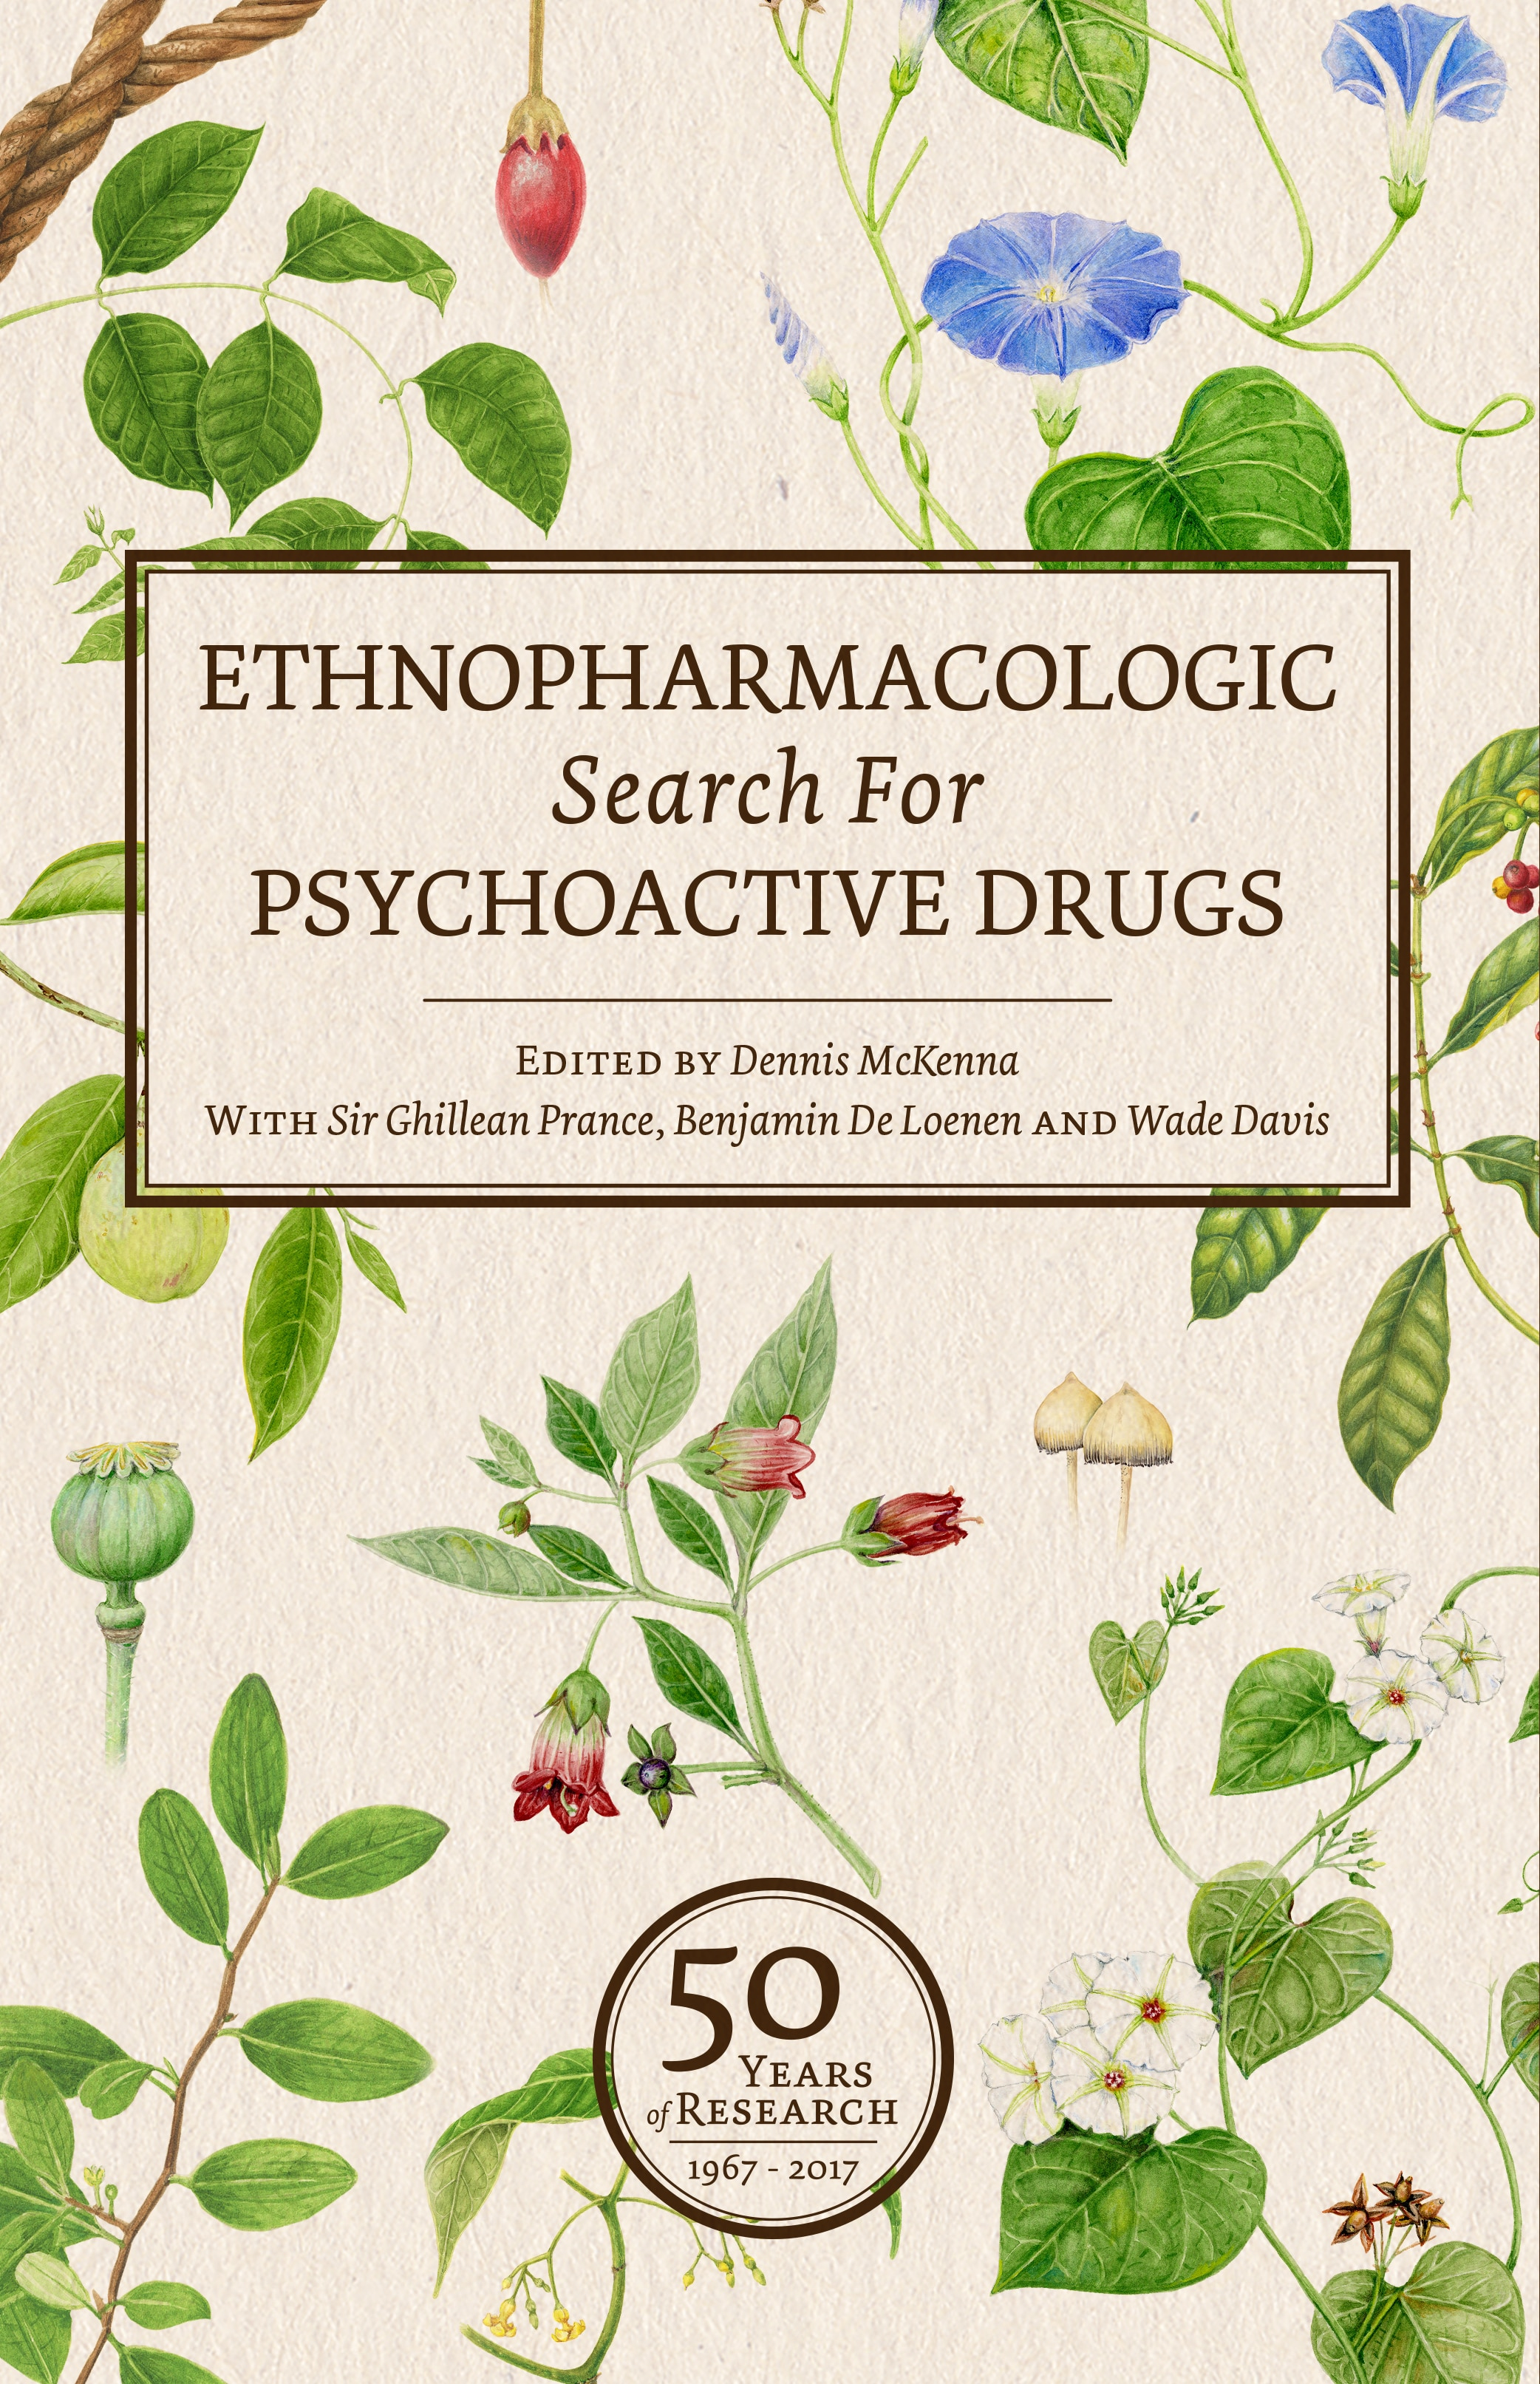 Ethnopharmacologic Search for Psychoactive Drugs edited by Dennis McKenna and Wade Davis published by Synergetic Press